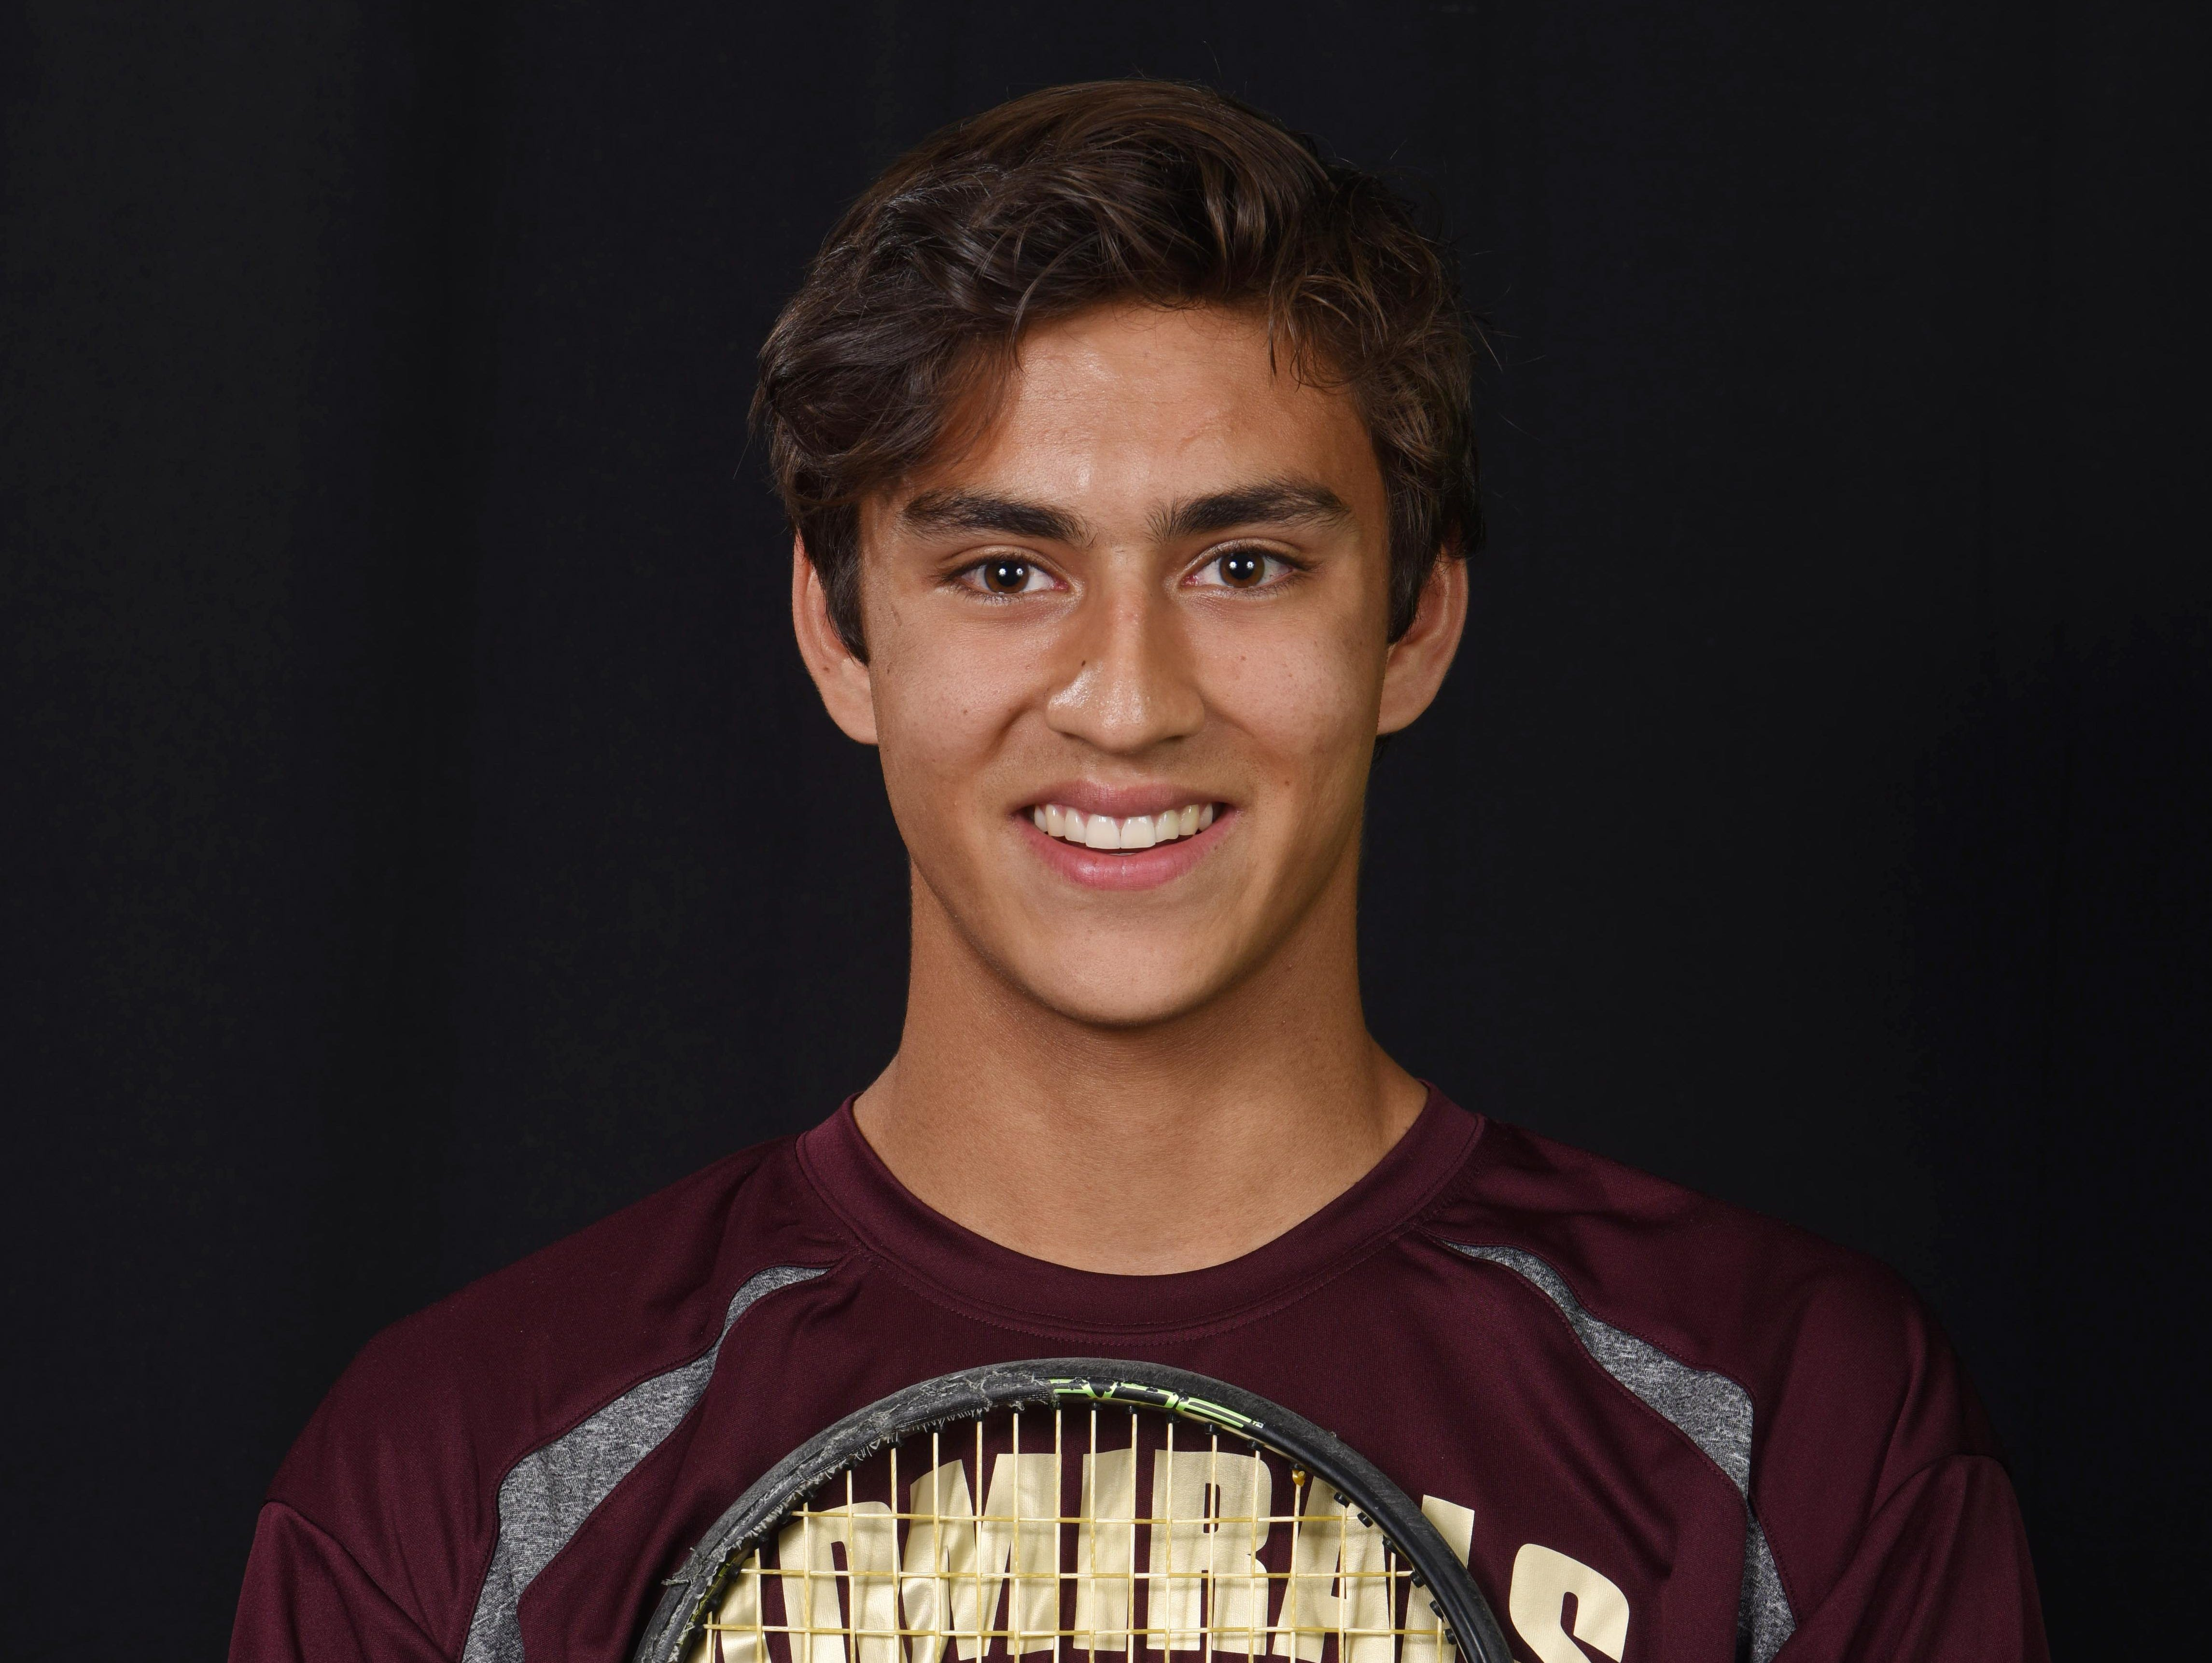 Arlington High School's Jake Bhangdia was named Poughkeepsie Journal's Tennis Player of the Year.